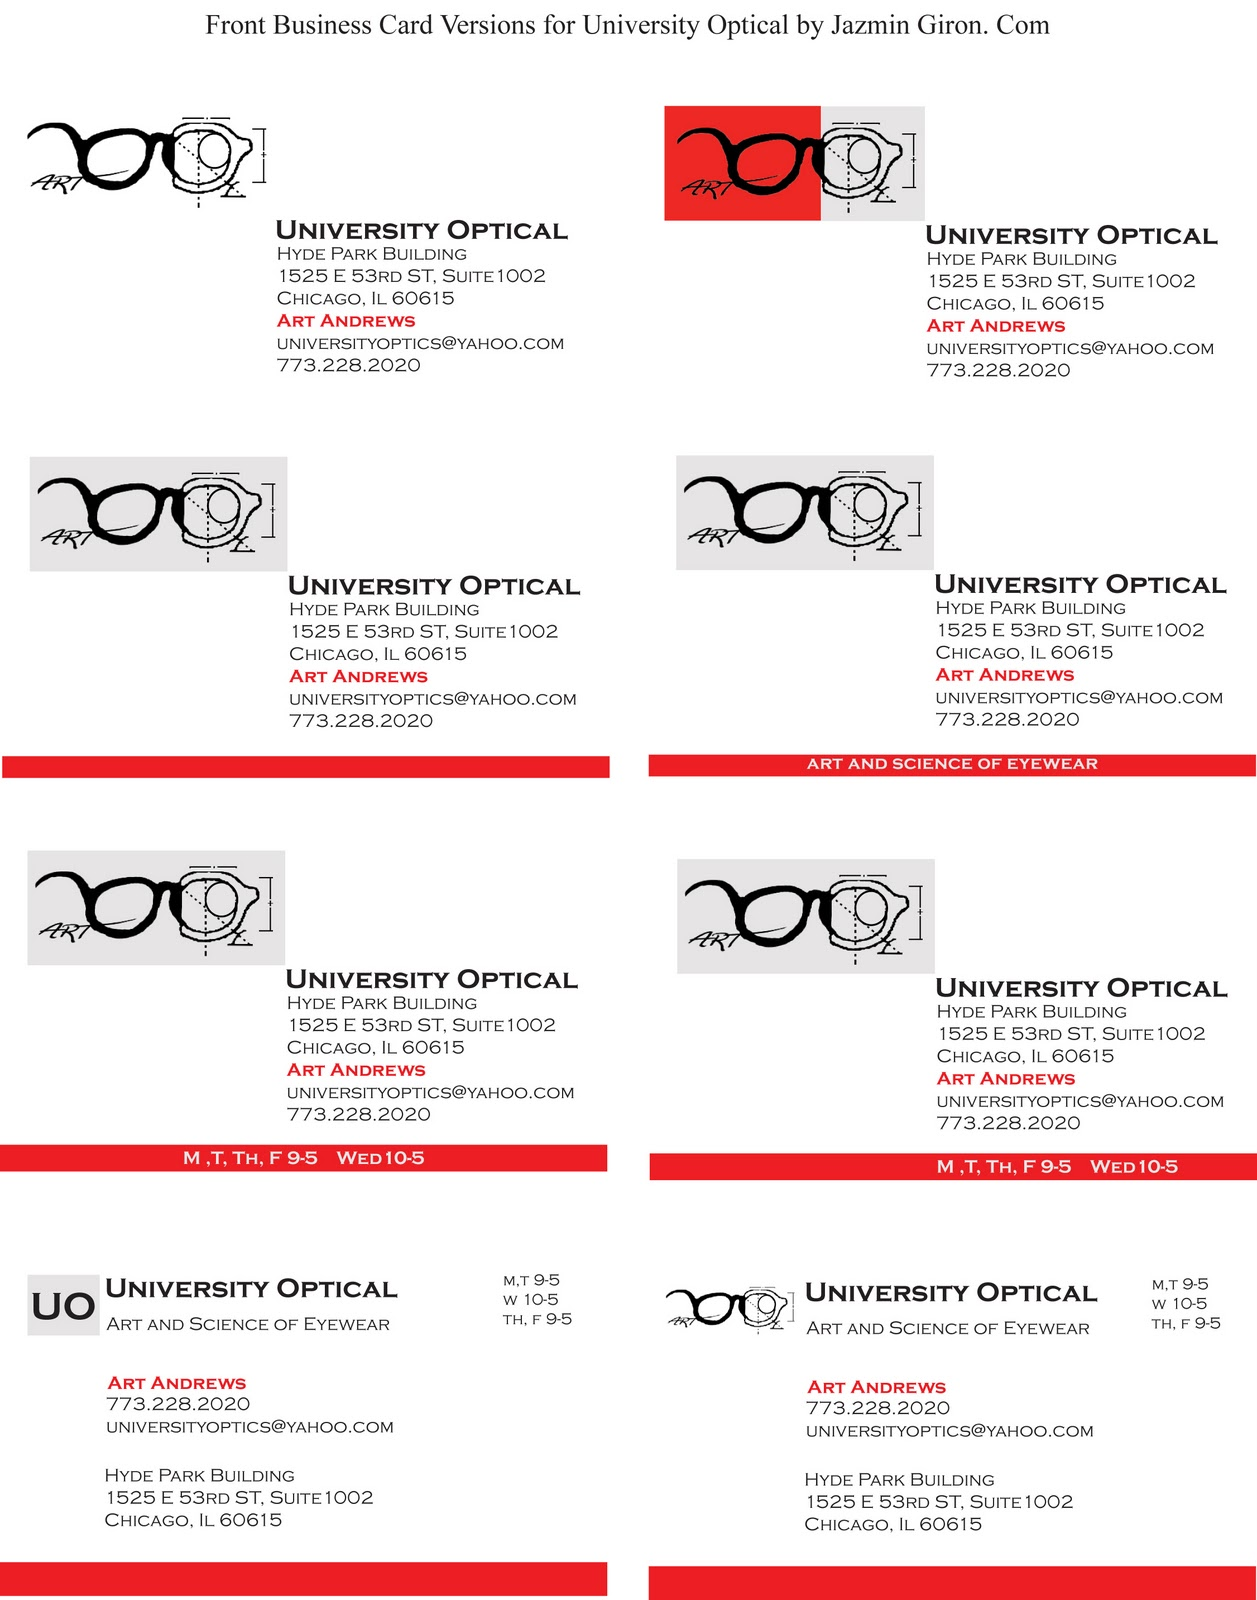 Business card designs for university optical jazmin giron life business card designs for university optical jazmin giron life behind the art colourmoves